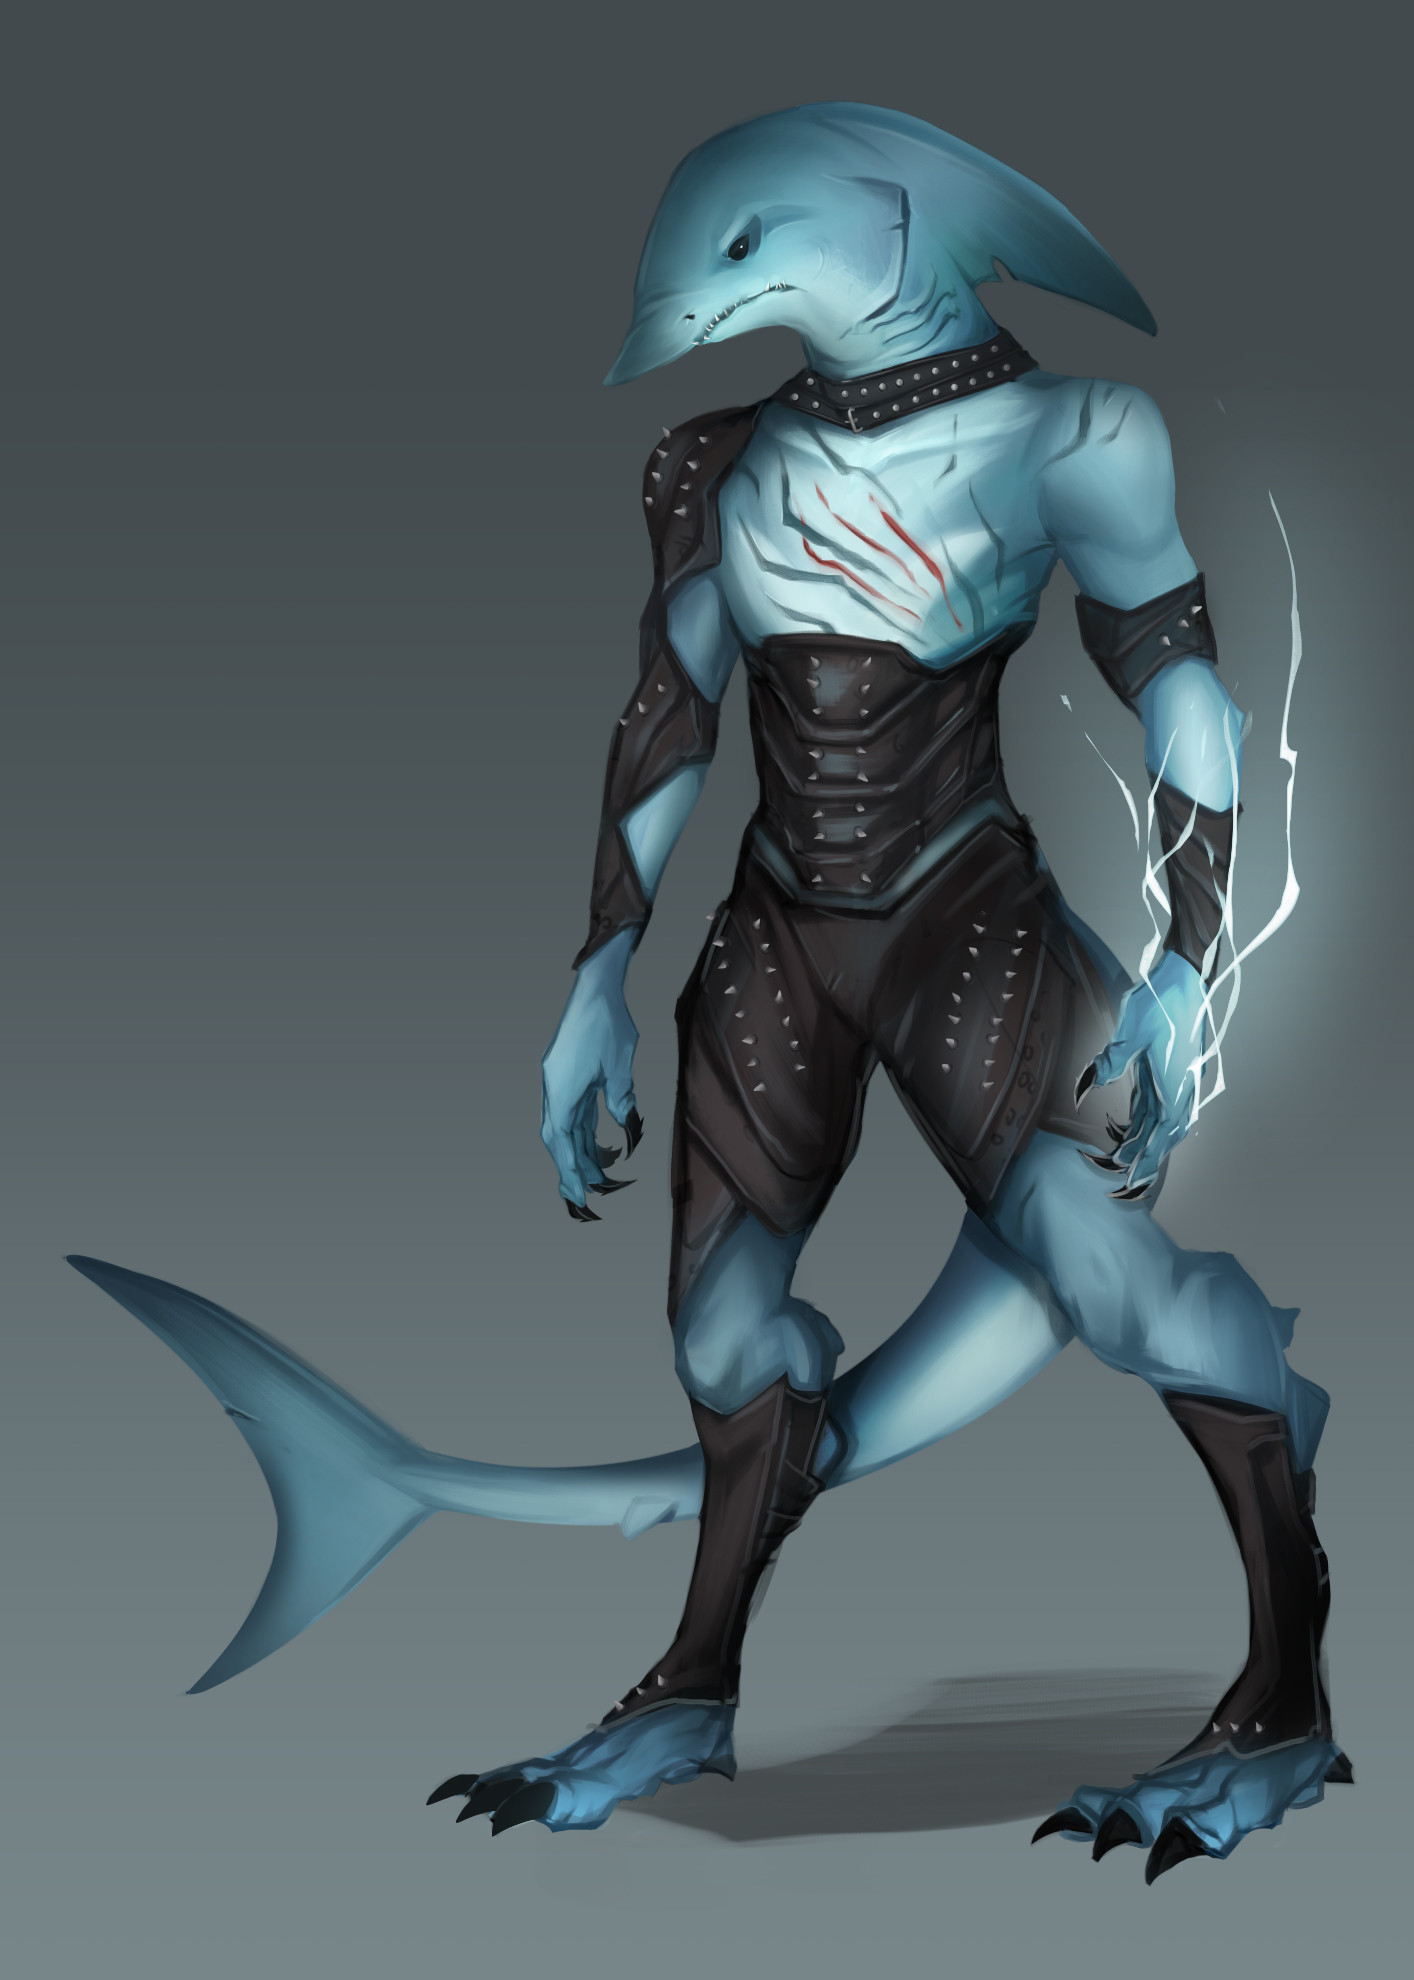 Vlada monakhova shark form full